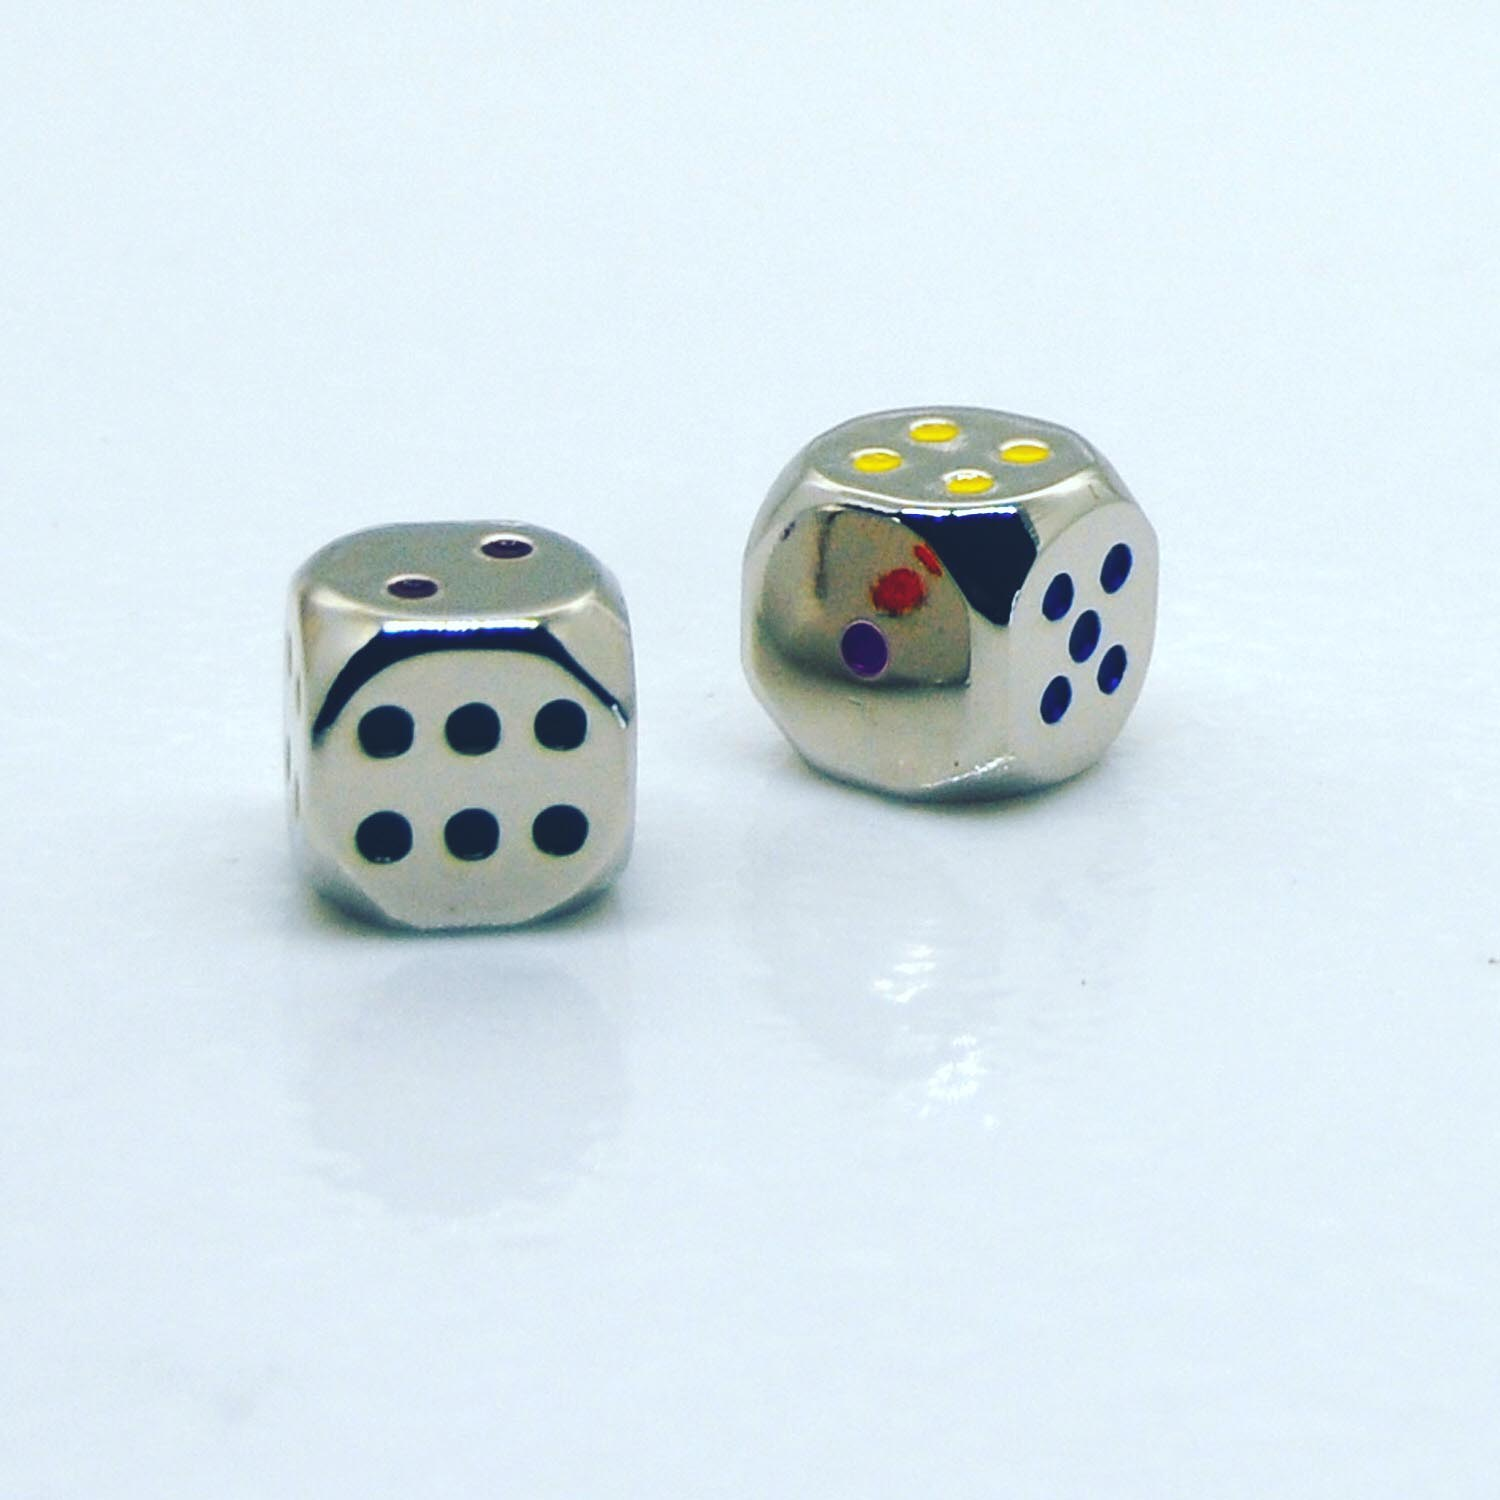 Set of 2 Zinc Dice